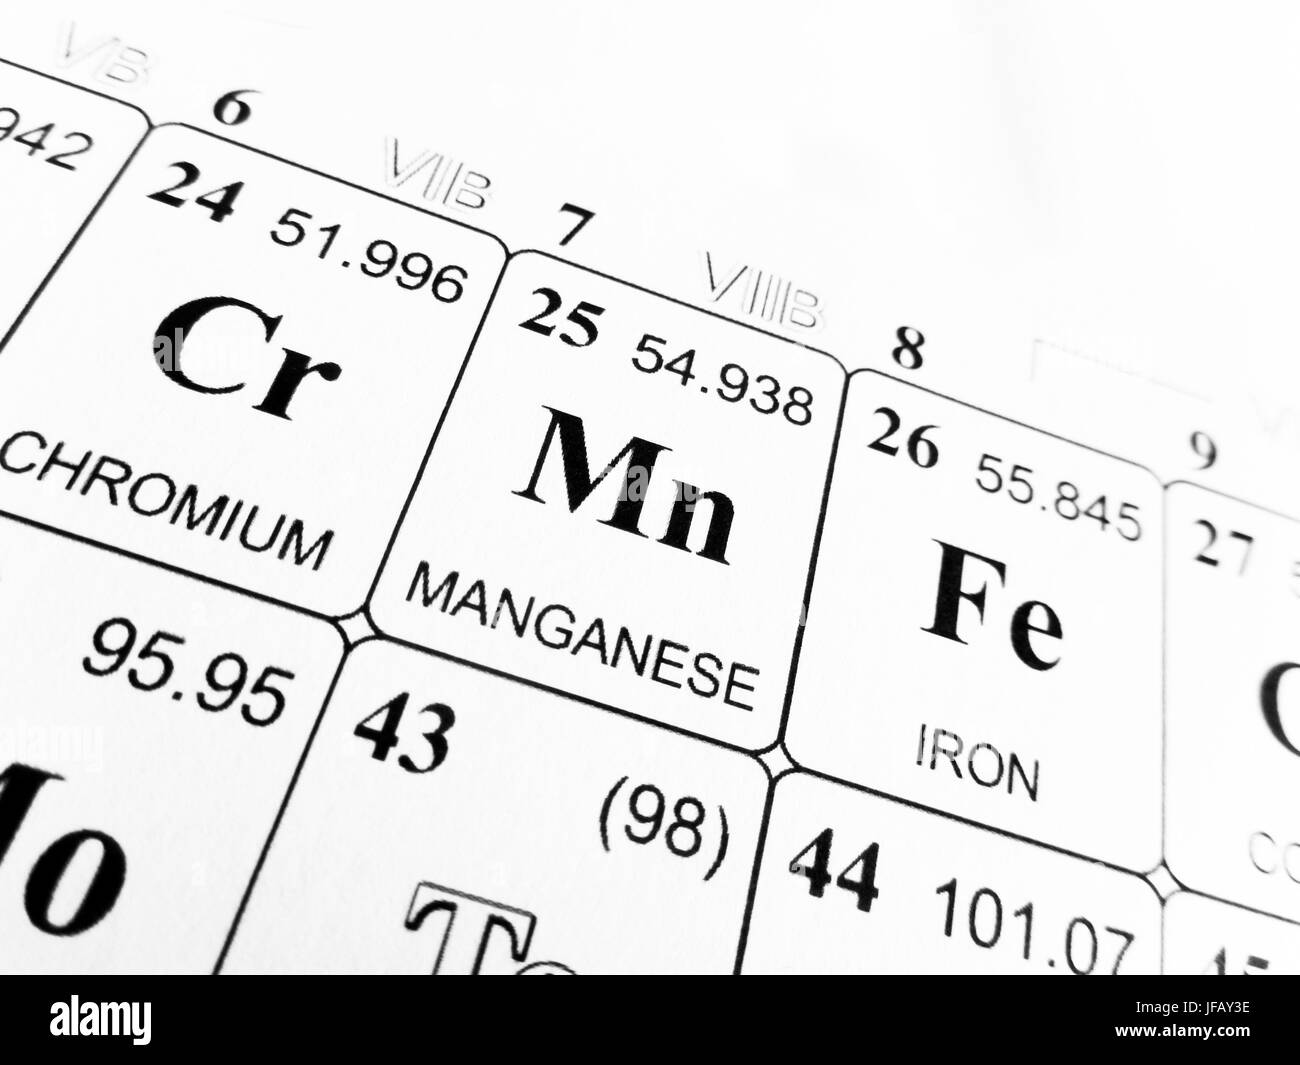 Manganese on the periodic table of the elements stock photo manganese on the periodic table of the elements urtaz Image collections